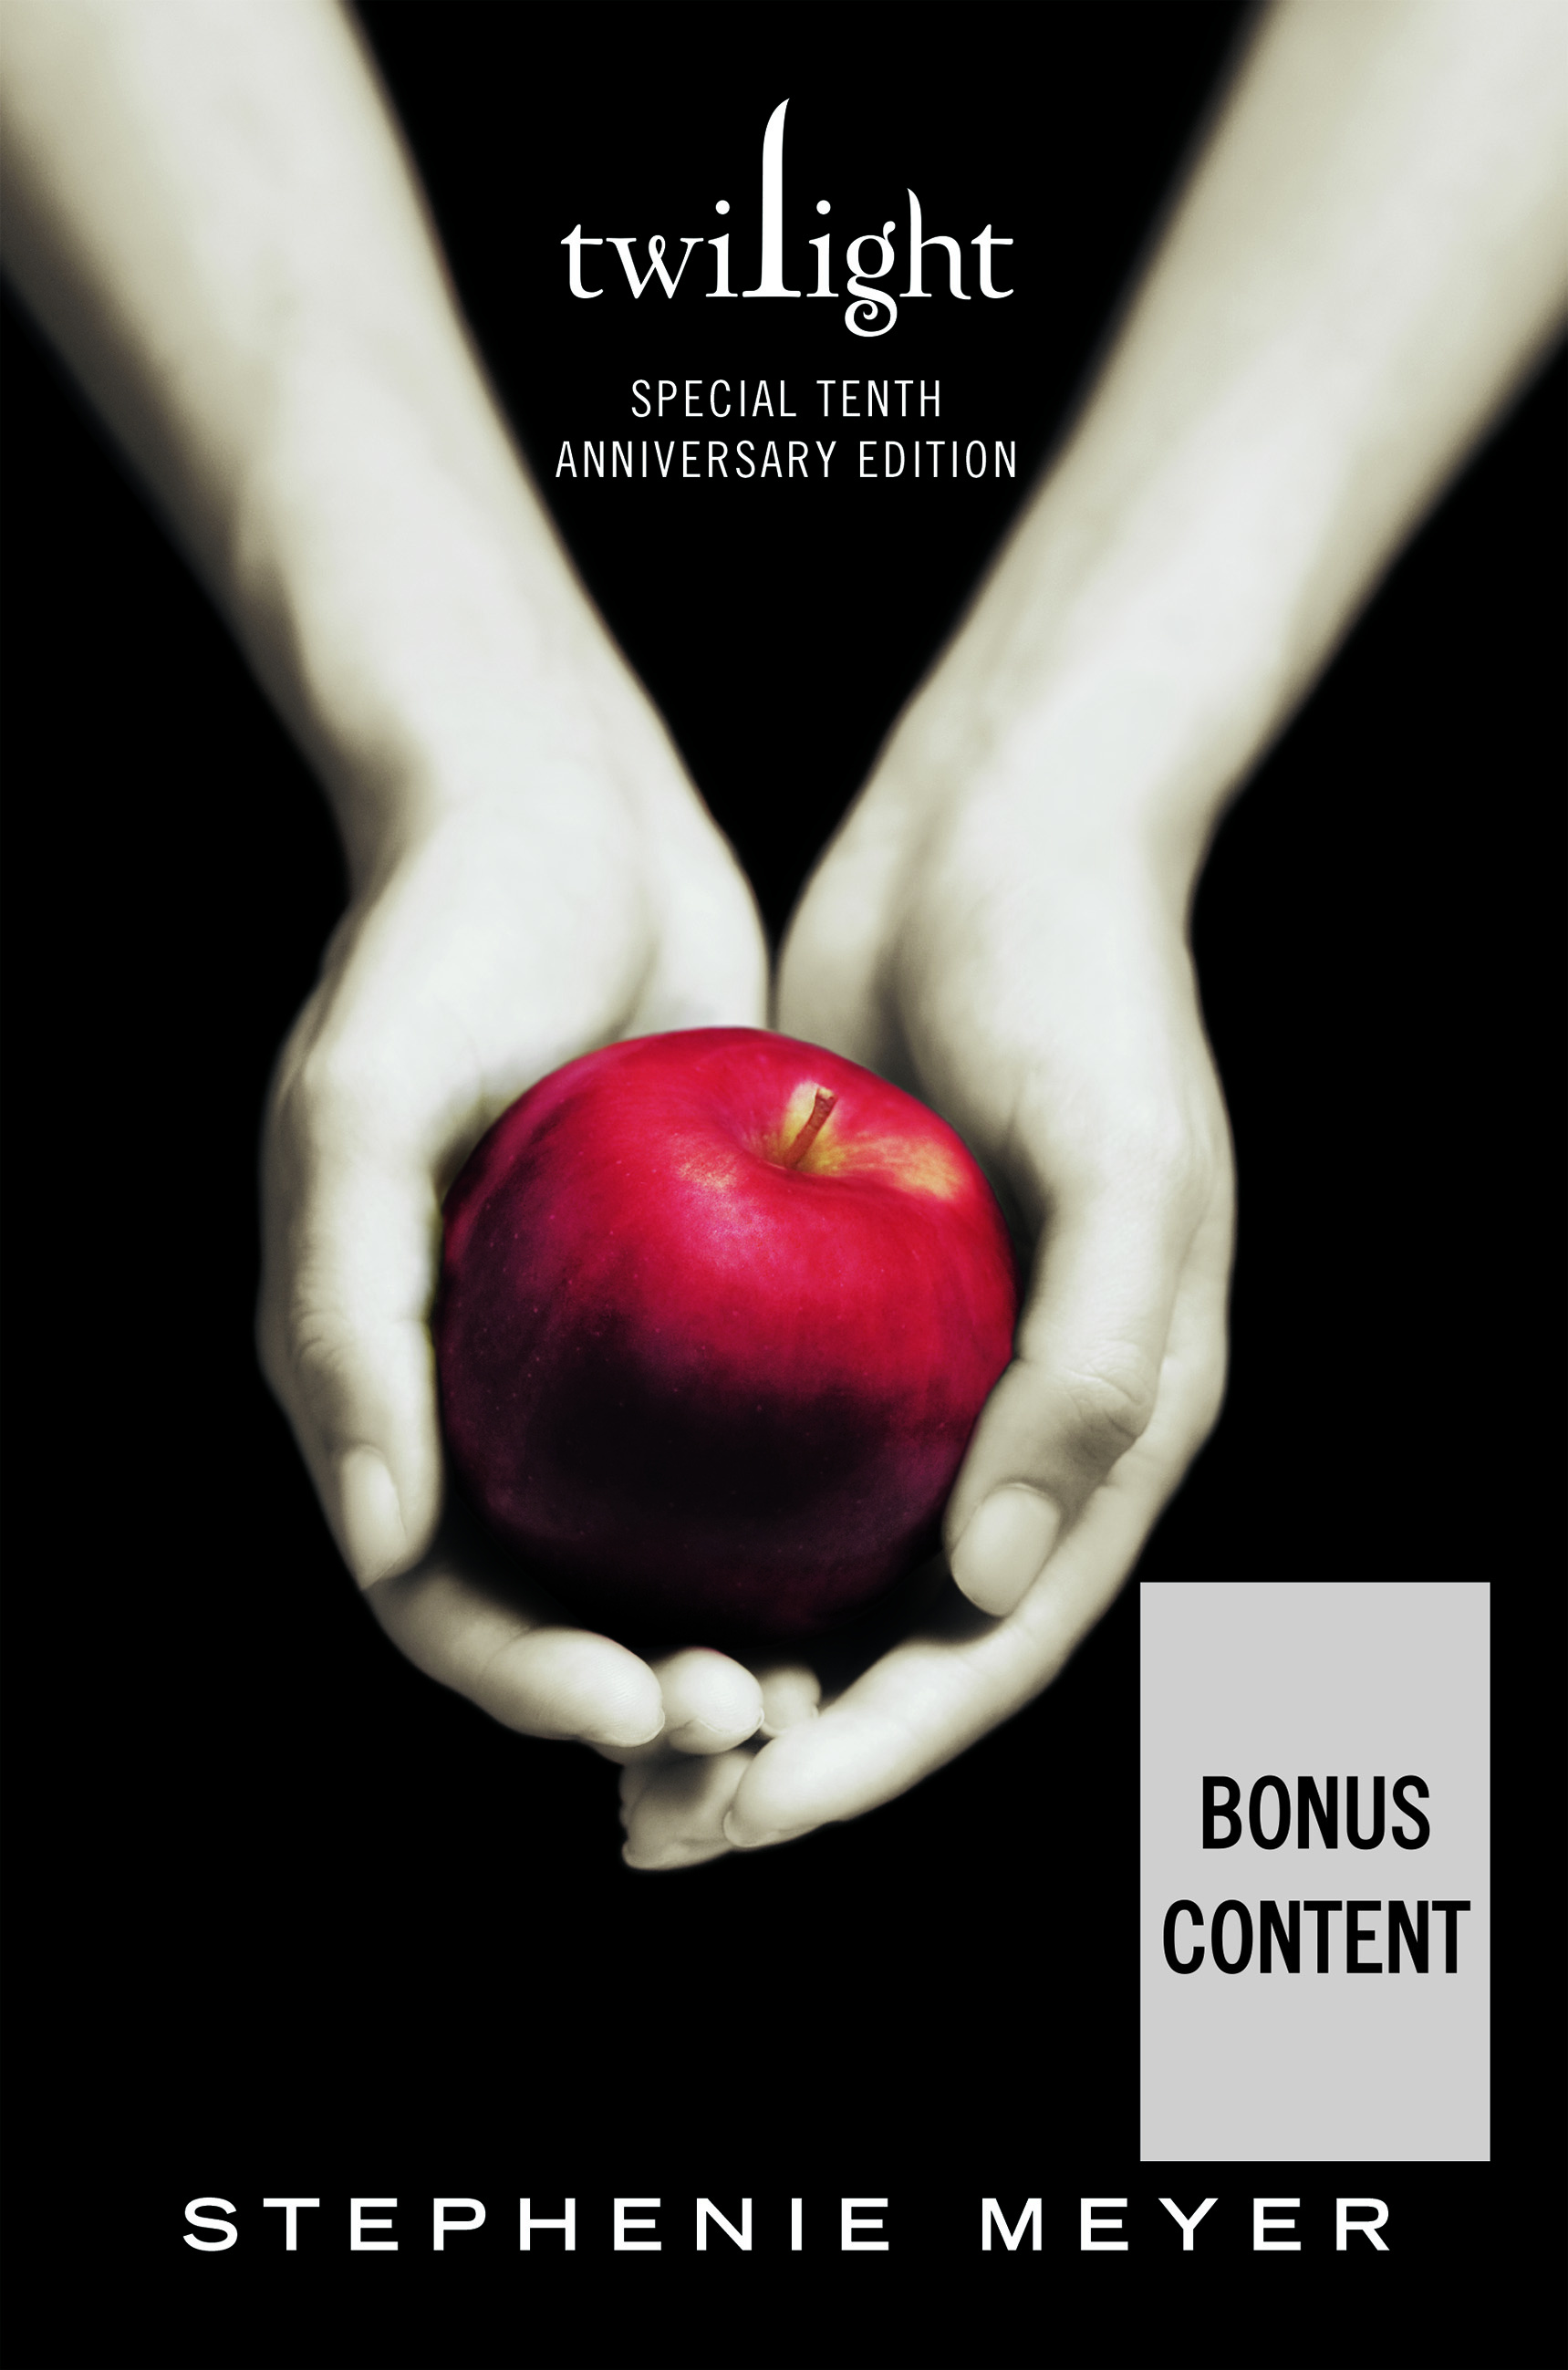 twilight_tenth_anniversary_edition_cover5b25d